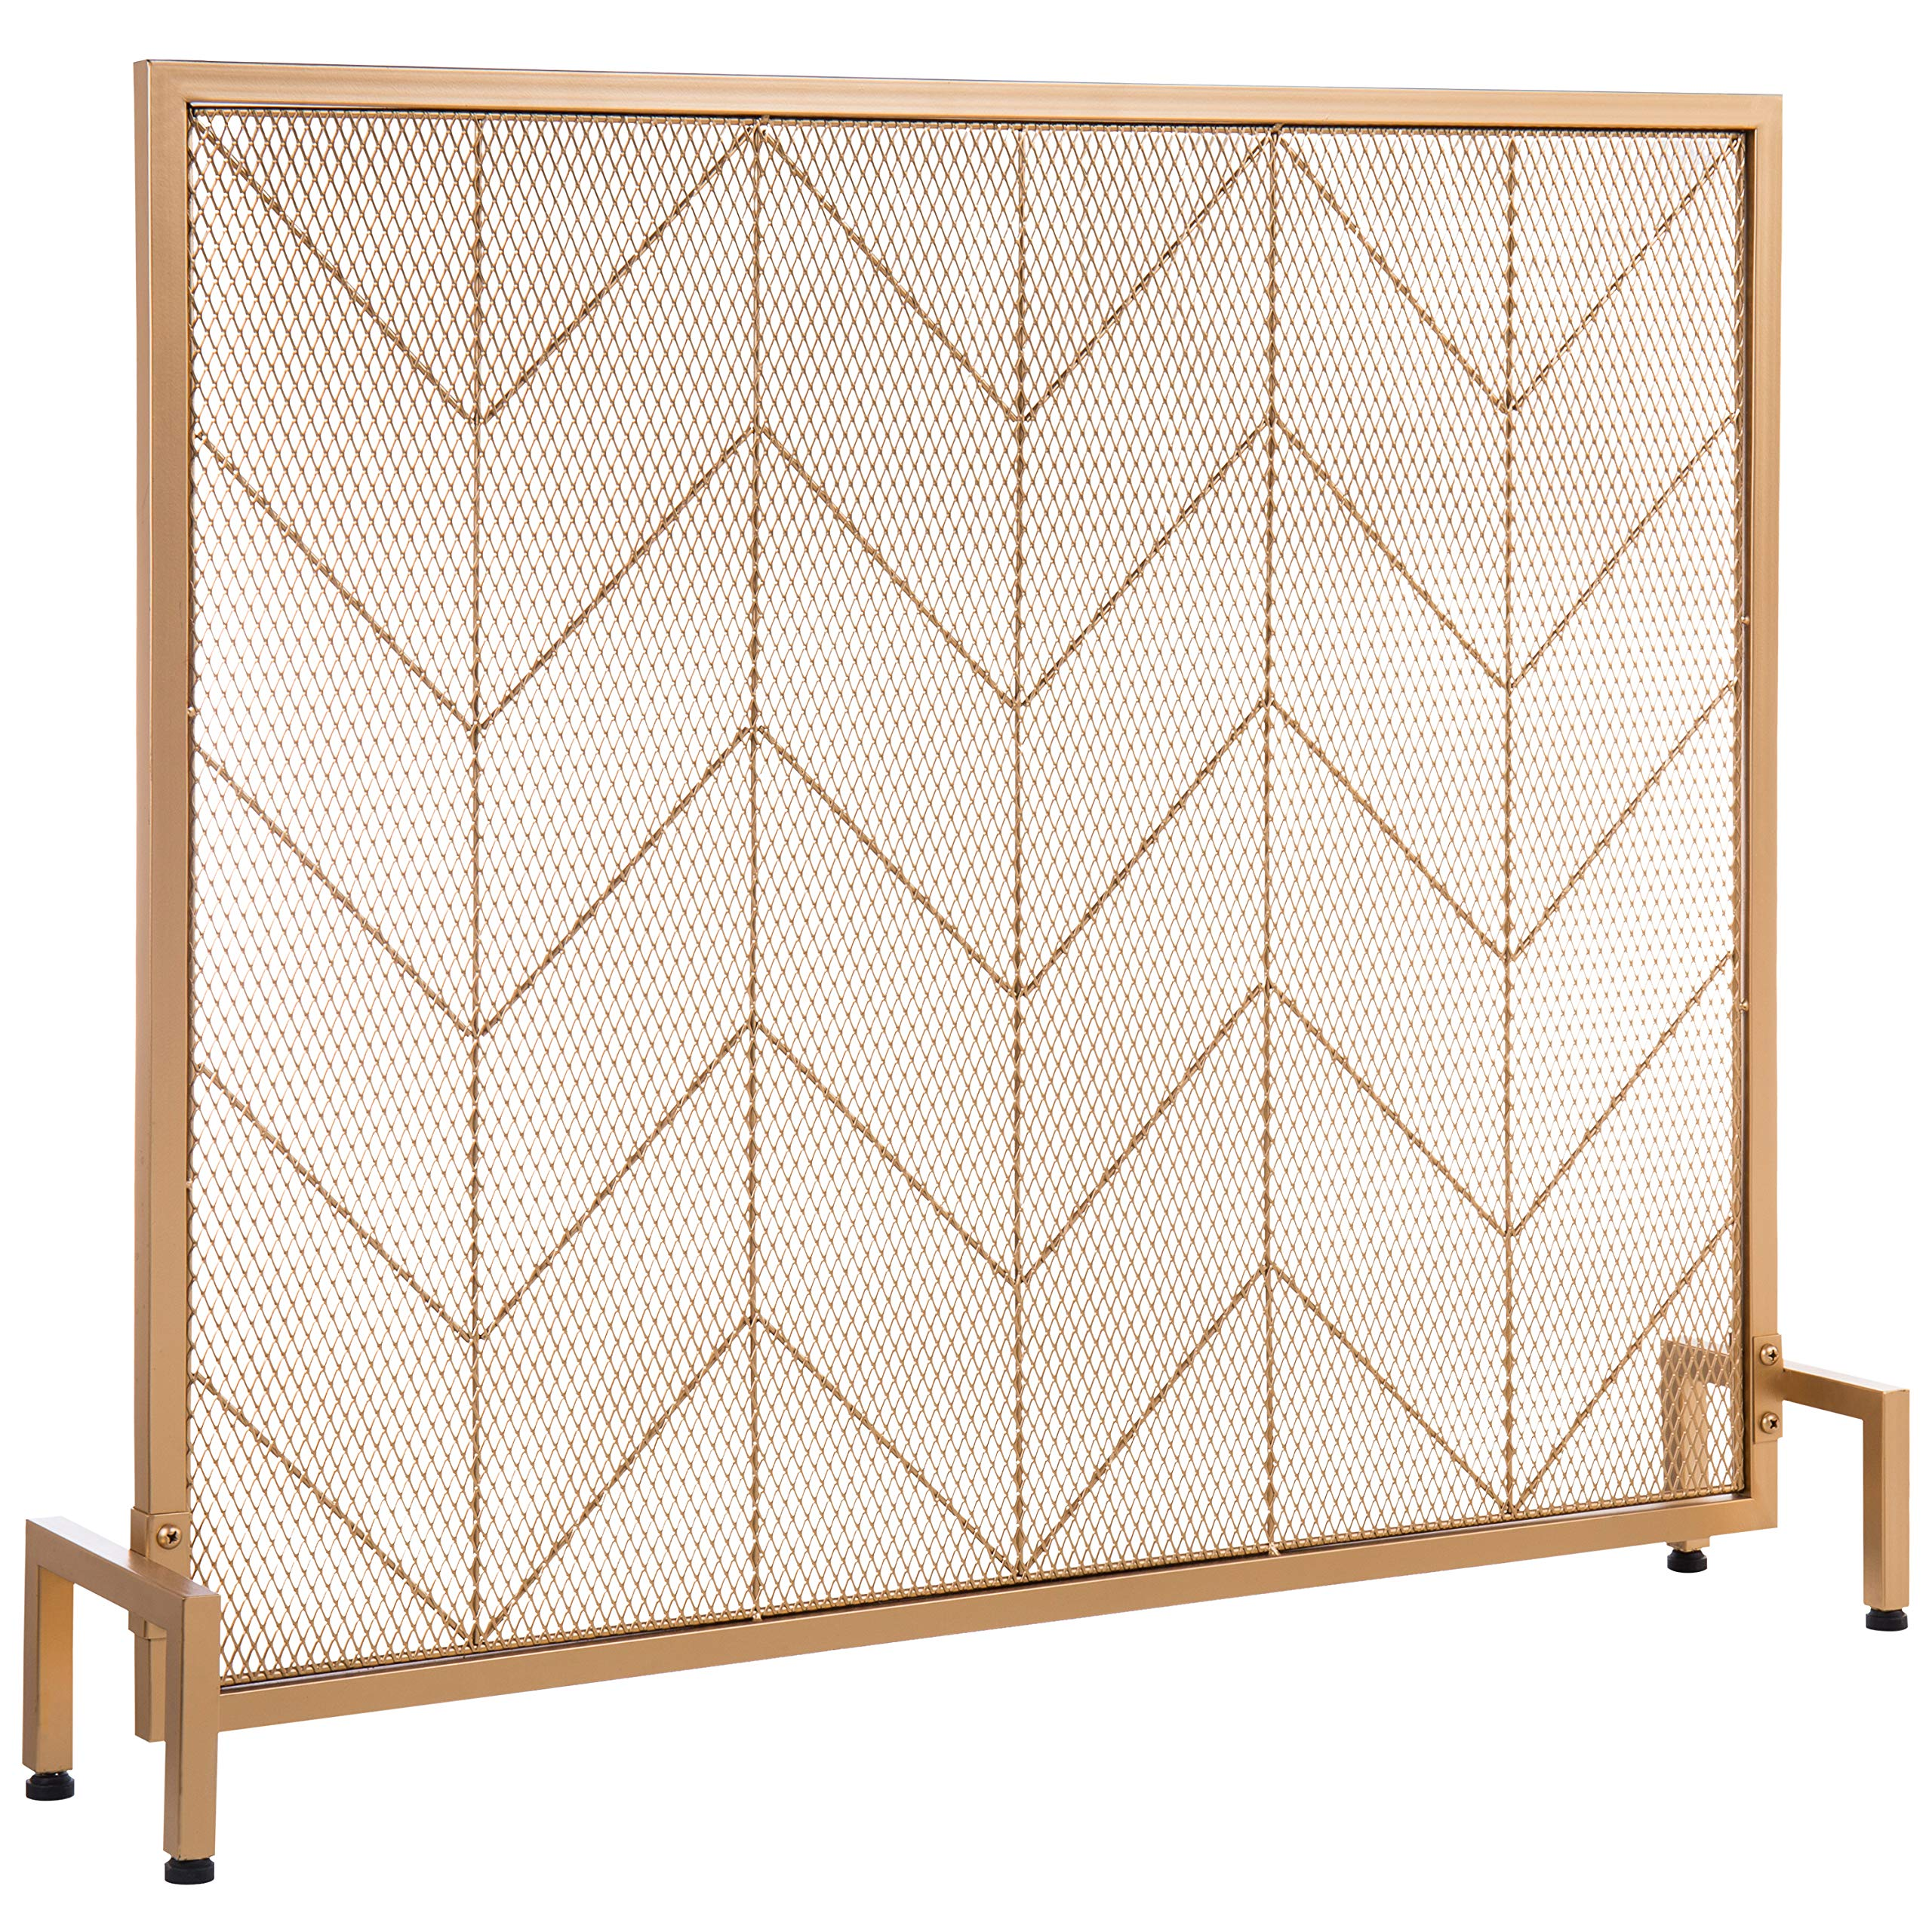 MyGift Vintage Gold-Tone Chevron Design Metal Freestanding Fireplace Screen by MyGift